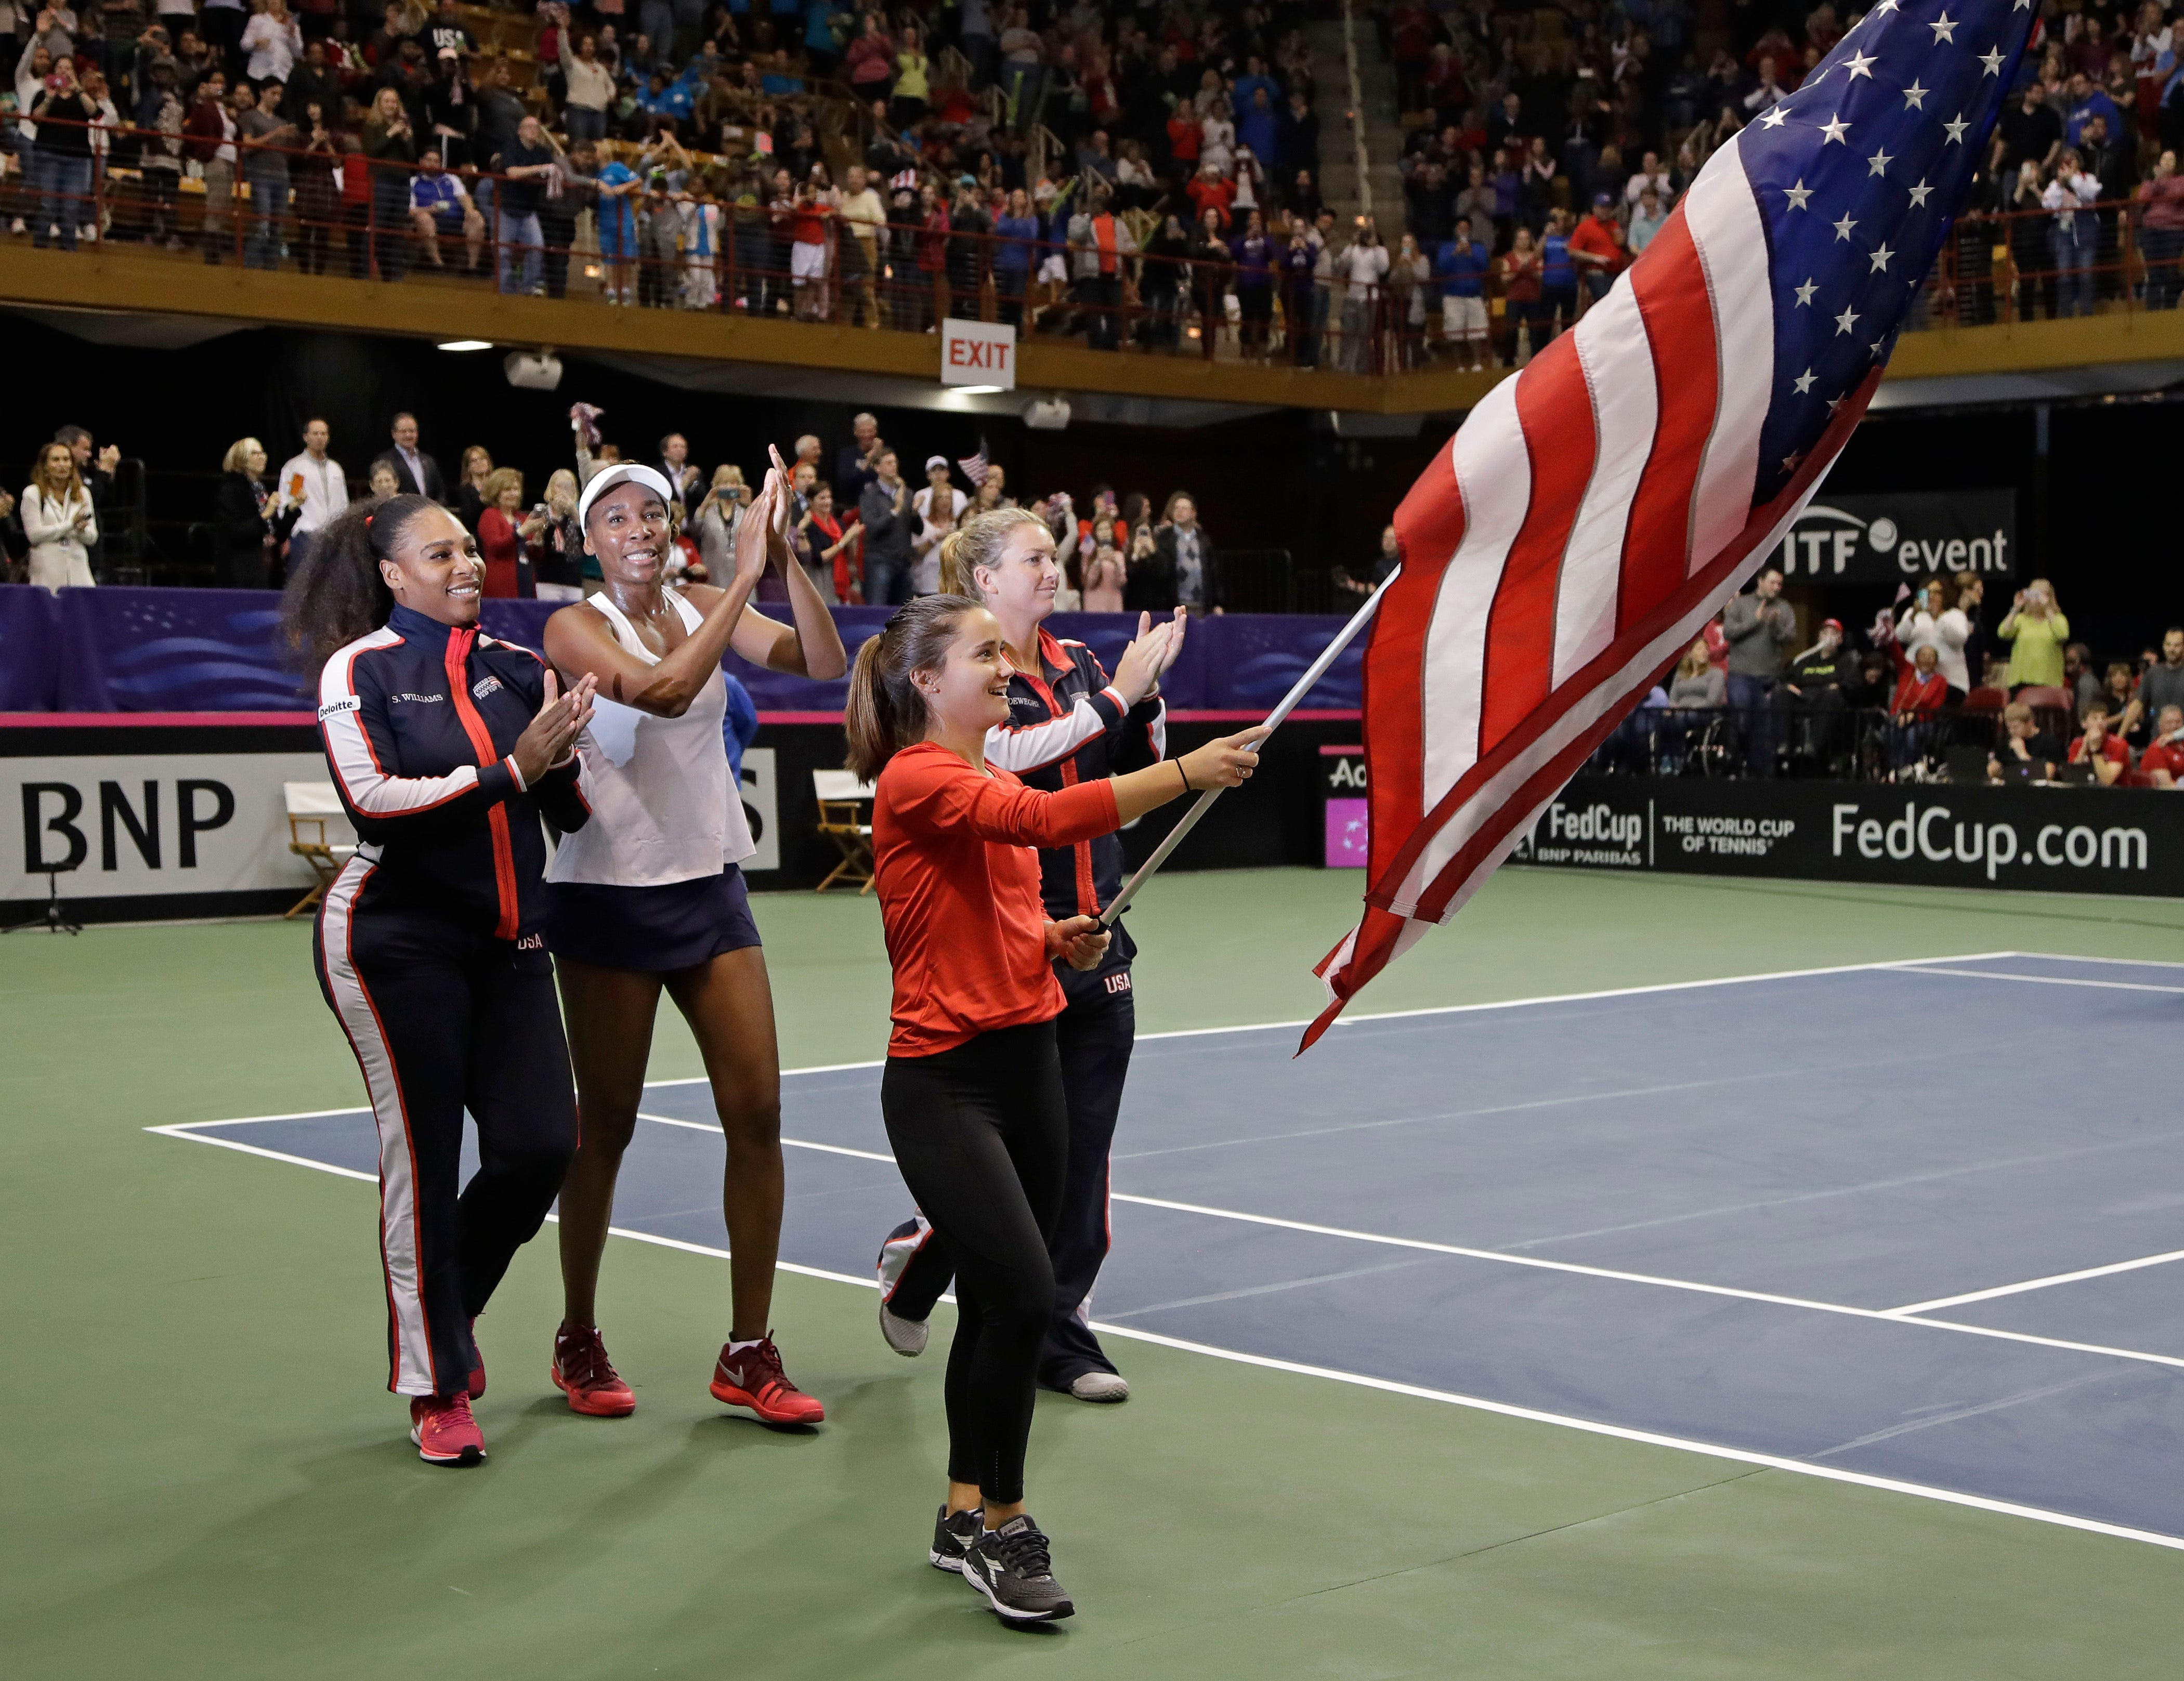 Venus Williams helps US clinch Fed Cup win over Netherlands